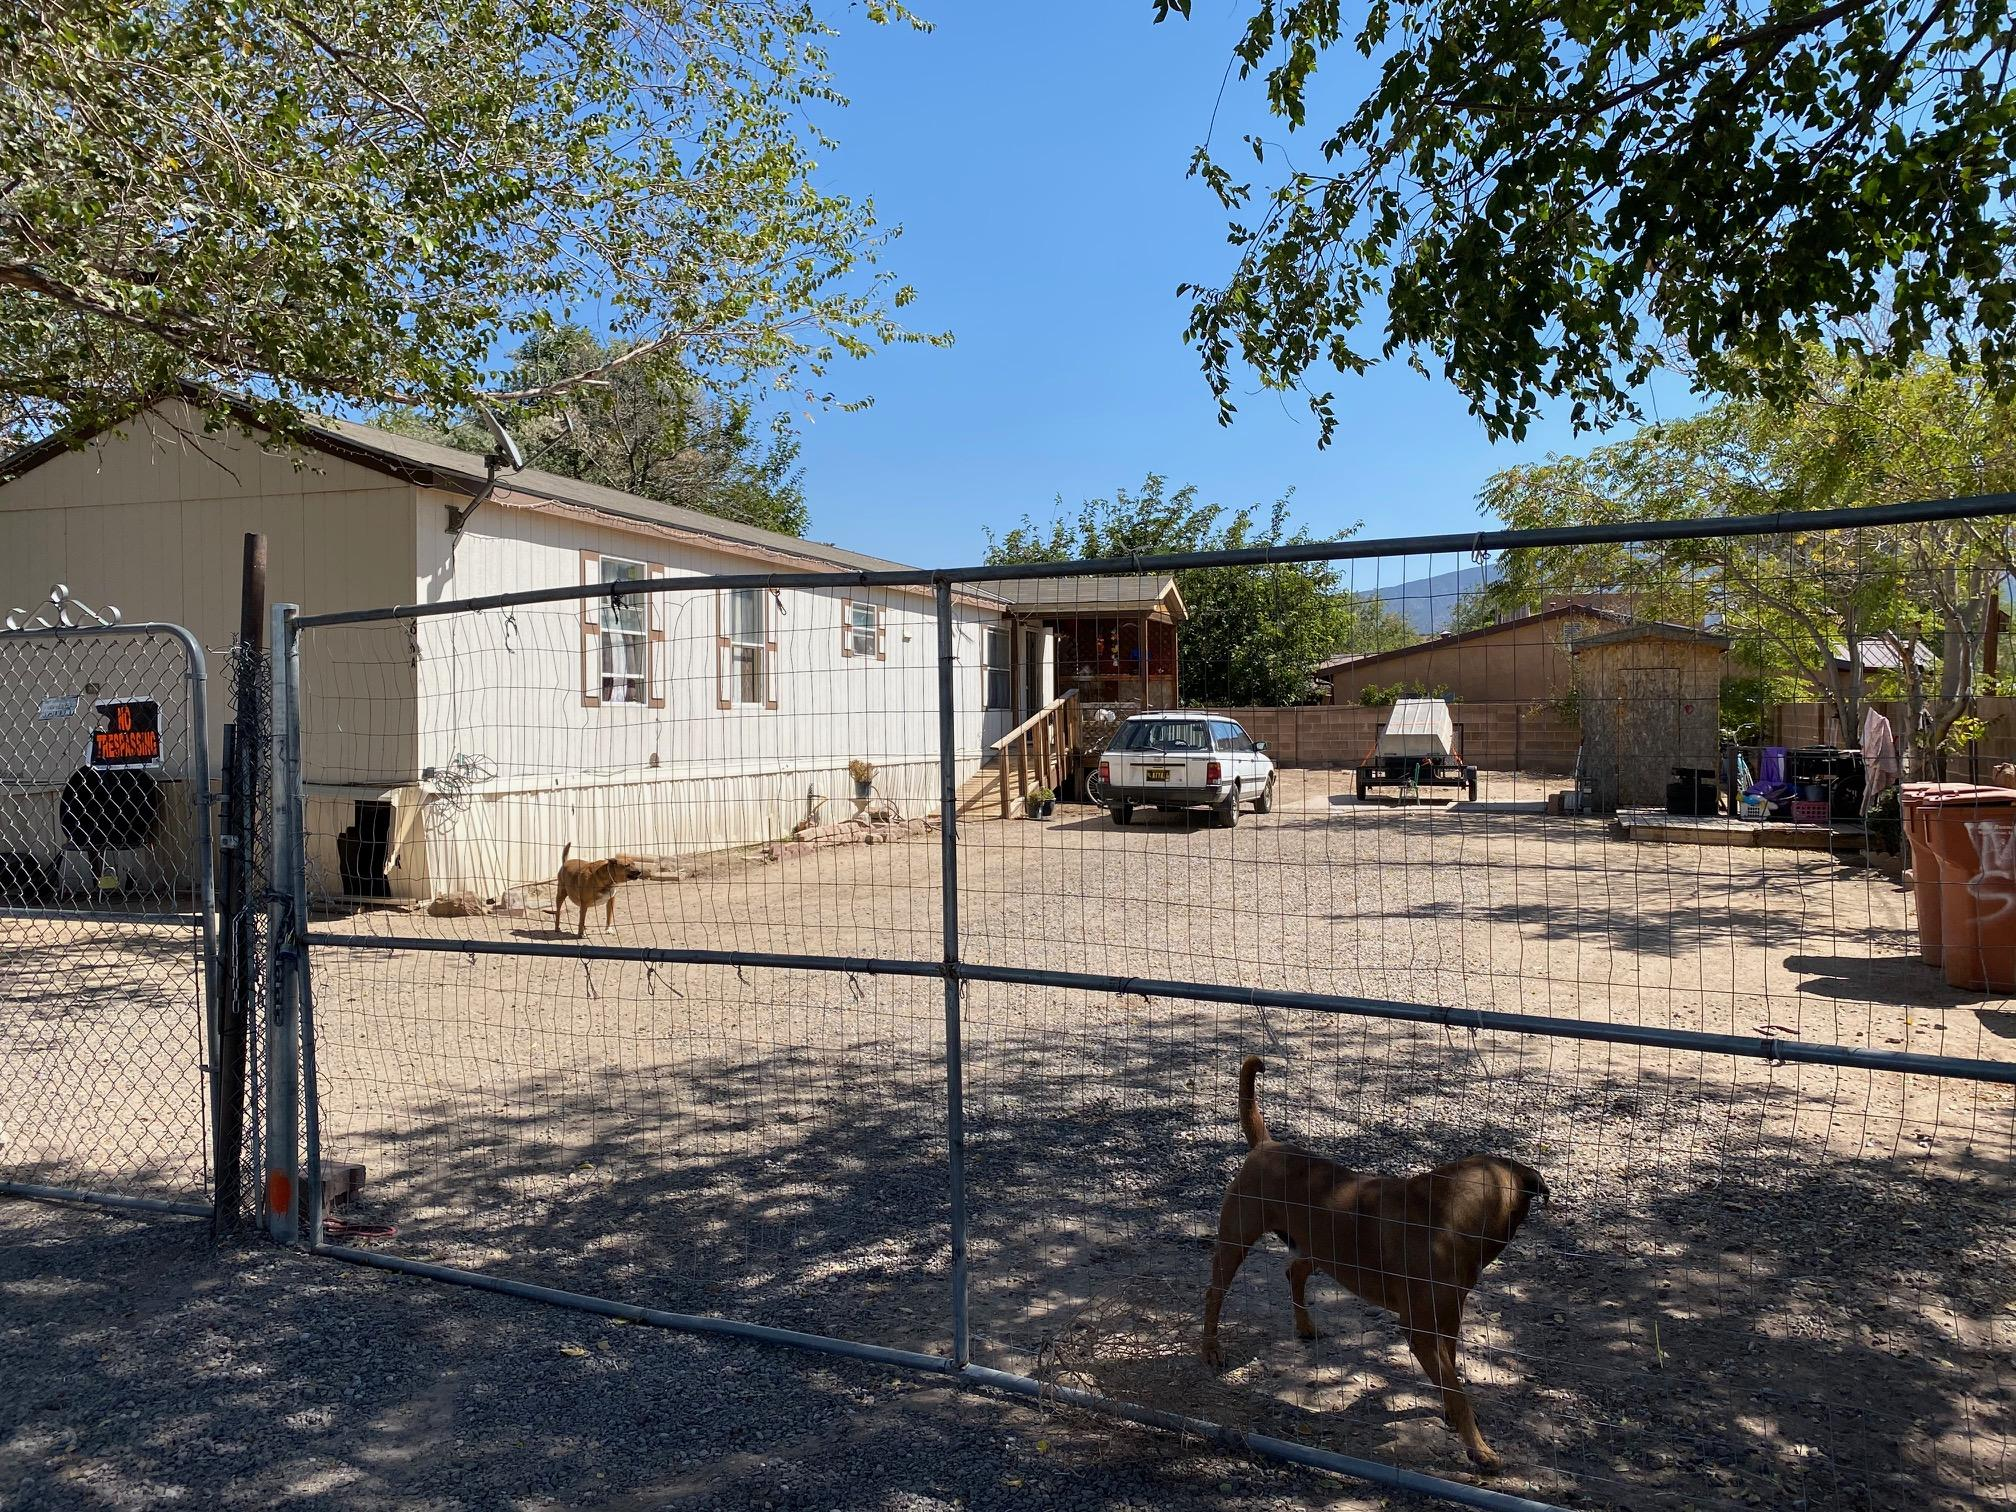 Pictures coming soon!! Make an appointment with your REALTOR to see this great opportunity in Bernalillo. Home offers 3 bed 2 bath on a large fenced lot. Open floor plan, large owners suite. and quick interstate access